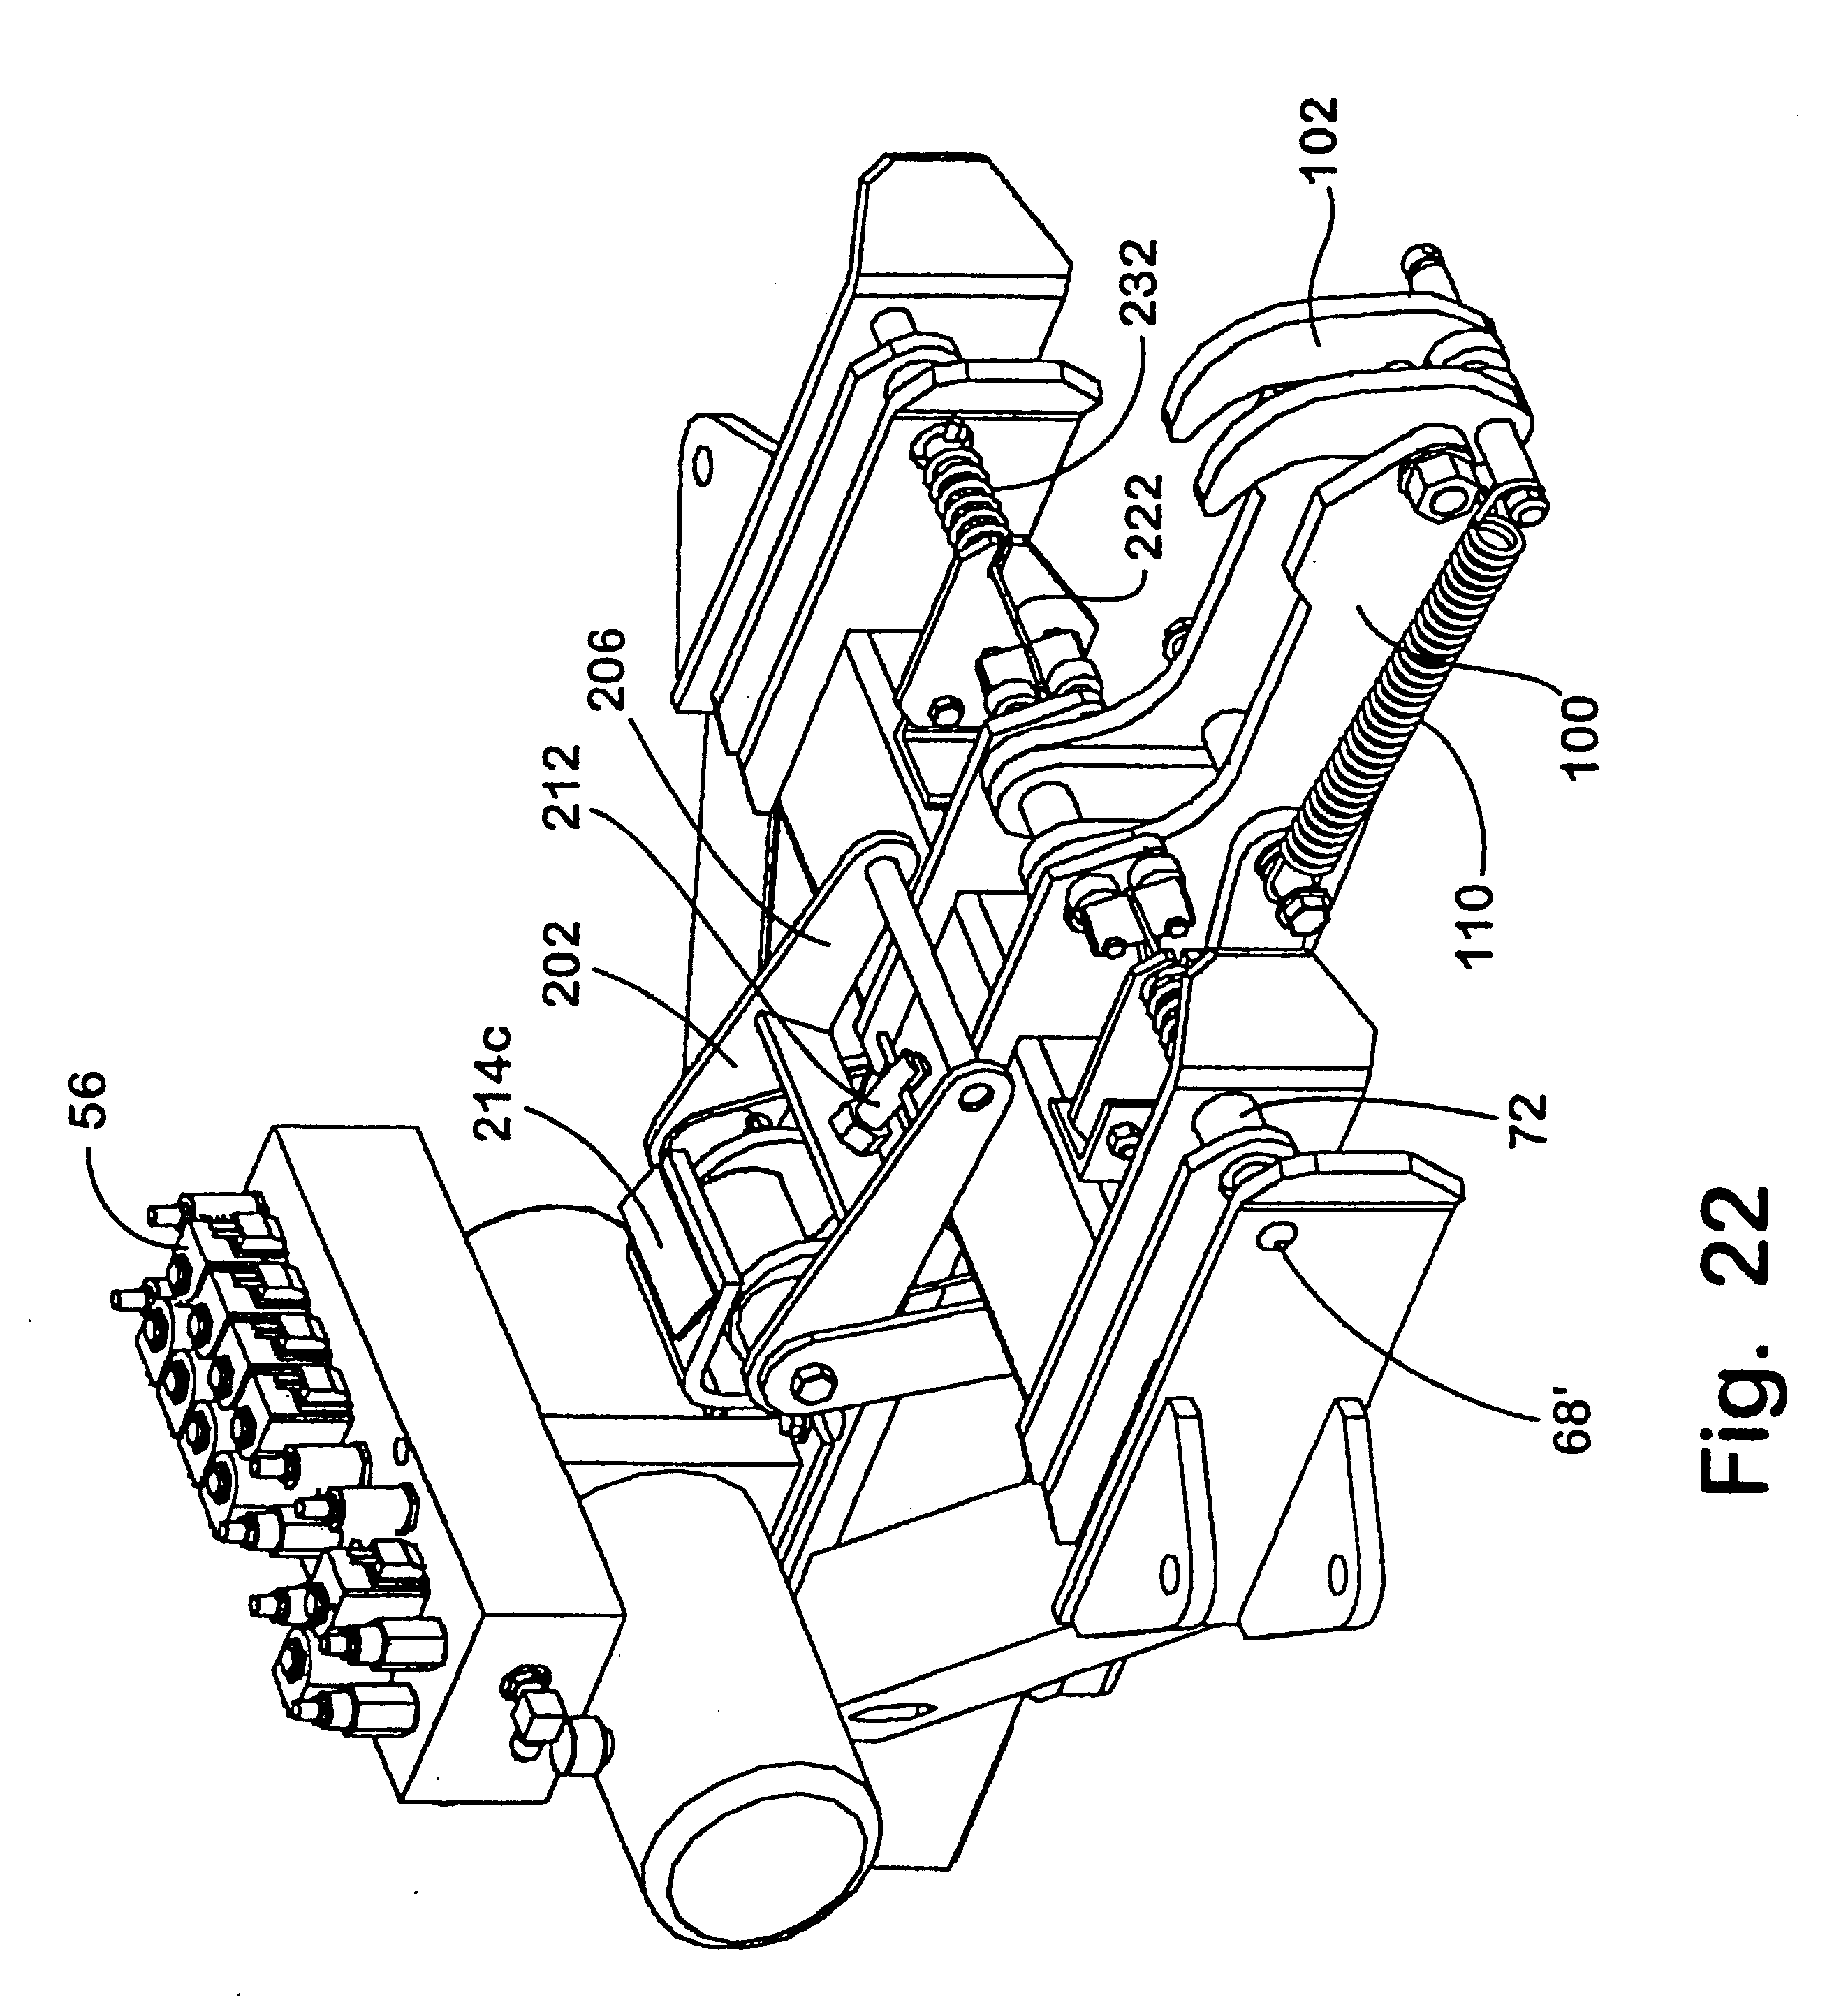 patent us6276076 plow hitch assembly for vehicles patents Blizzard Snow Plow Parts Diagram patent drawing